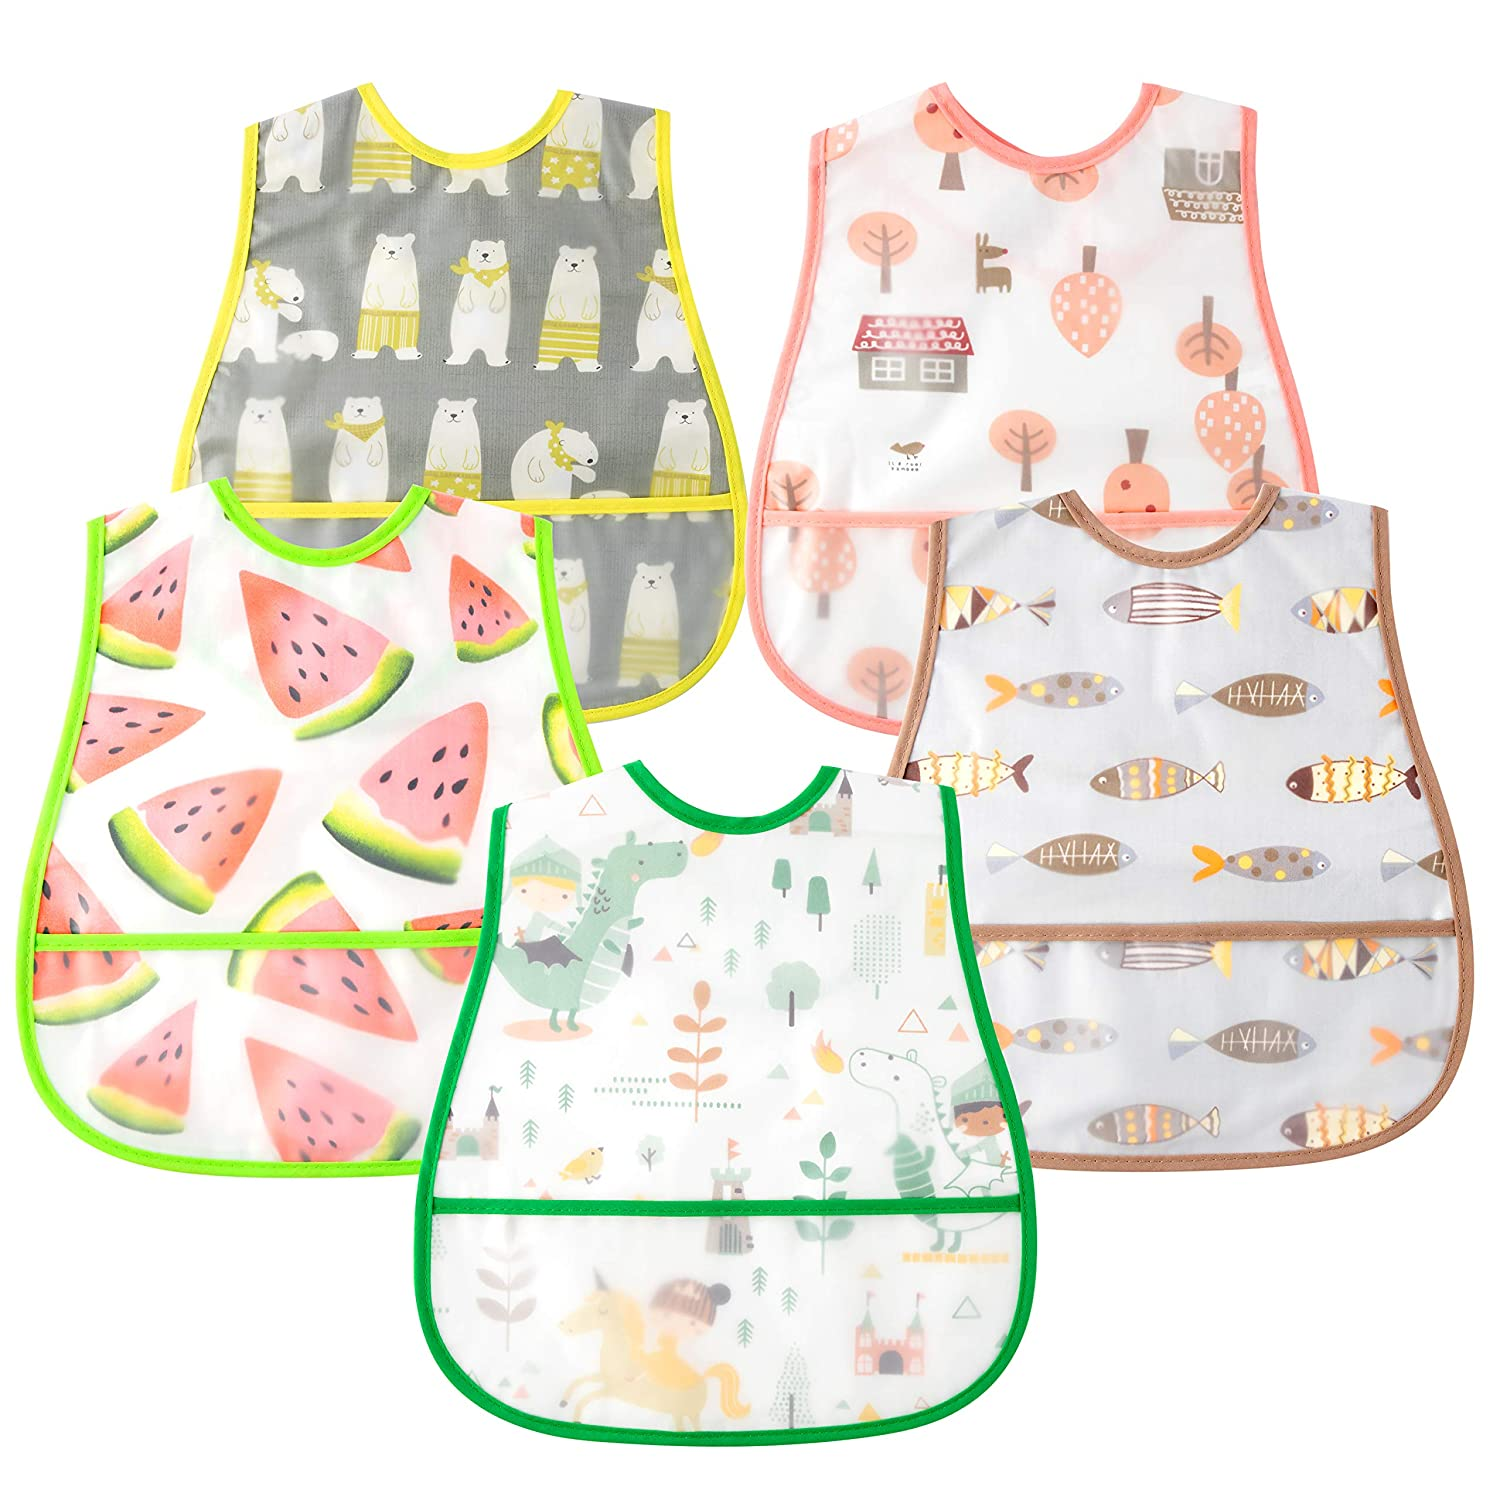 5 Pcs Baby Bibs with Pocket and Snap Button Waterproof Food Bibs Infant Feeding Bibs Gift for Toddler 6-24 Months